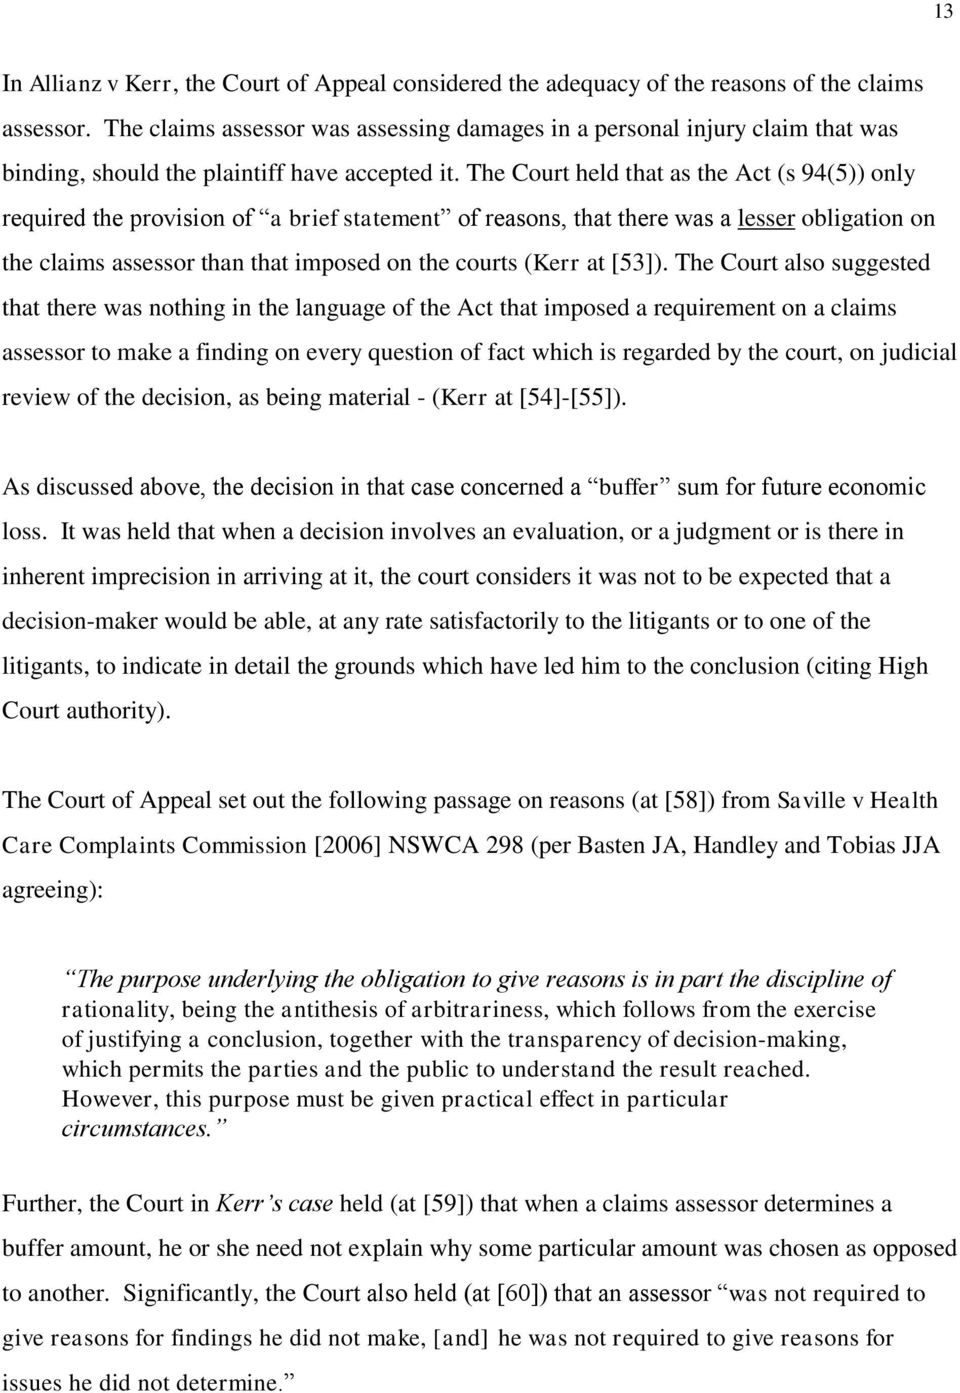 The Court held that as the Act (s 94(5)) only required the provision of a brief statement of reasons, that there was a lesser obligation on the claims assessor than that imposed on the courts (Kerr